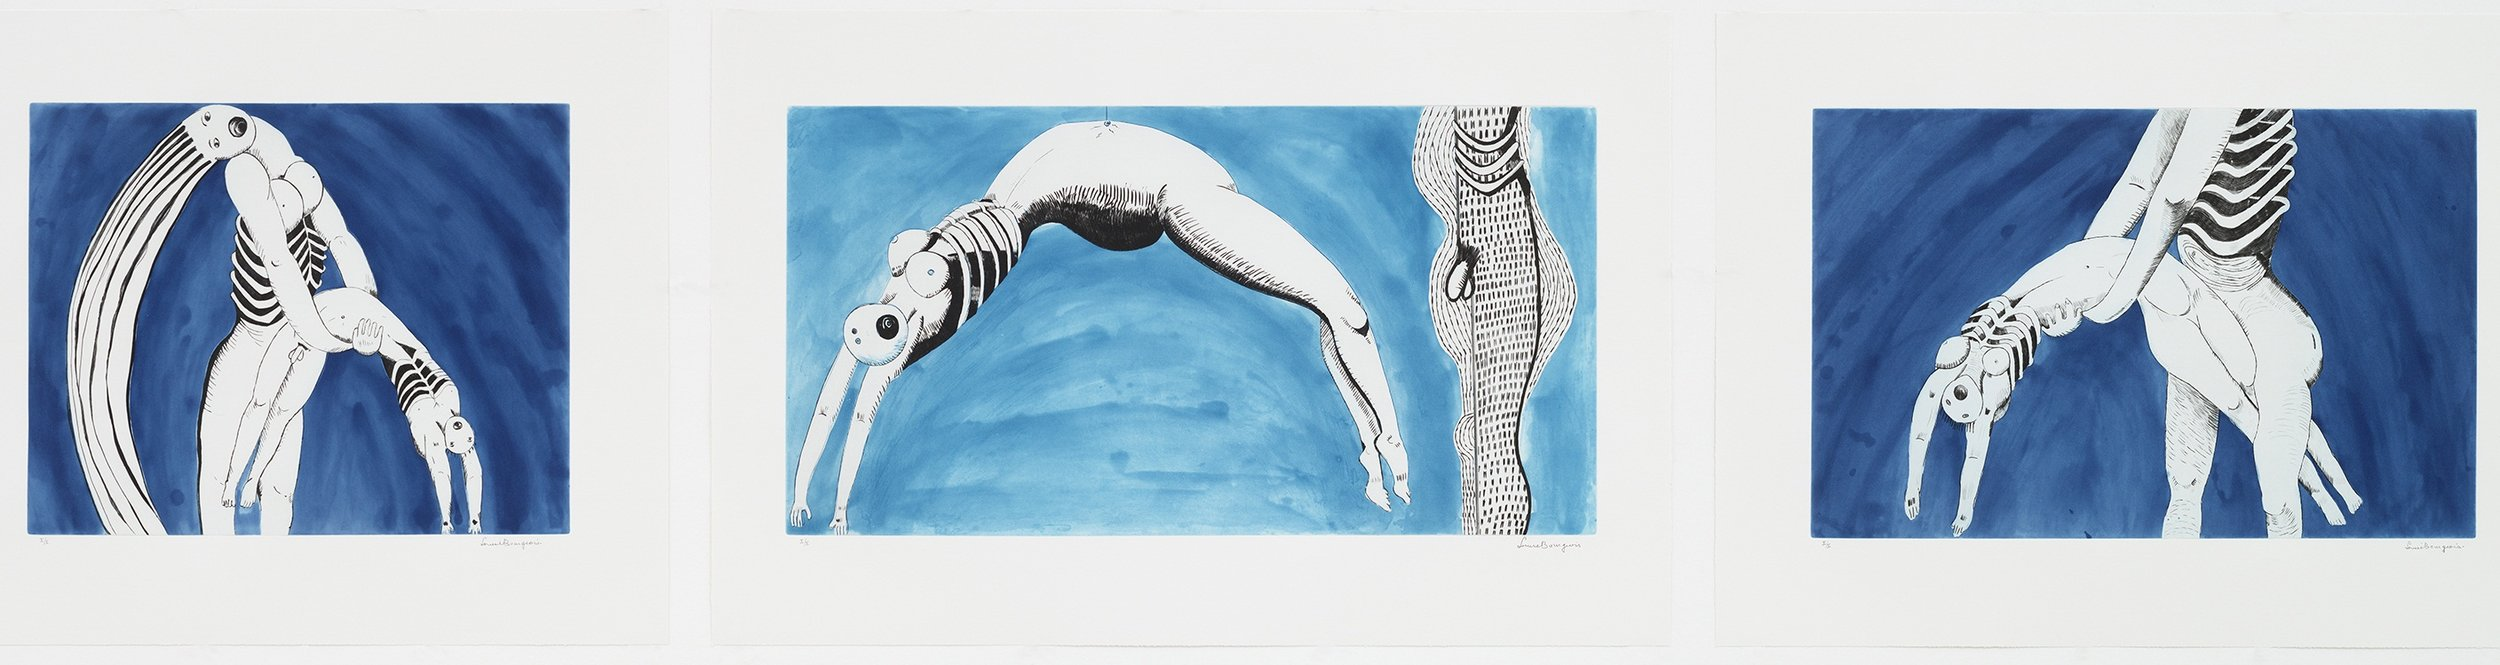 Louise Bourgeois (1911–2010). Triptych for the Red Room. 1994. The Museum of Modern Art, New York. Gift of the artist. © 2017 The Easton Foundation/Licensed by VAGA, NY